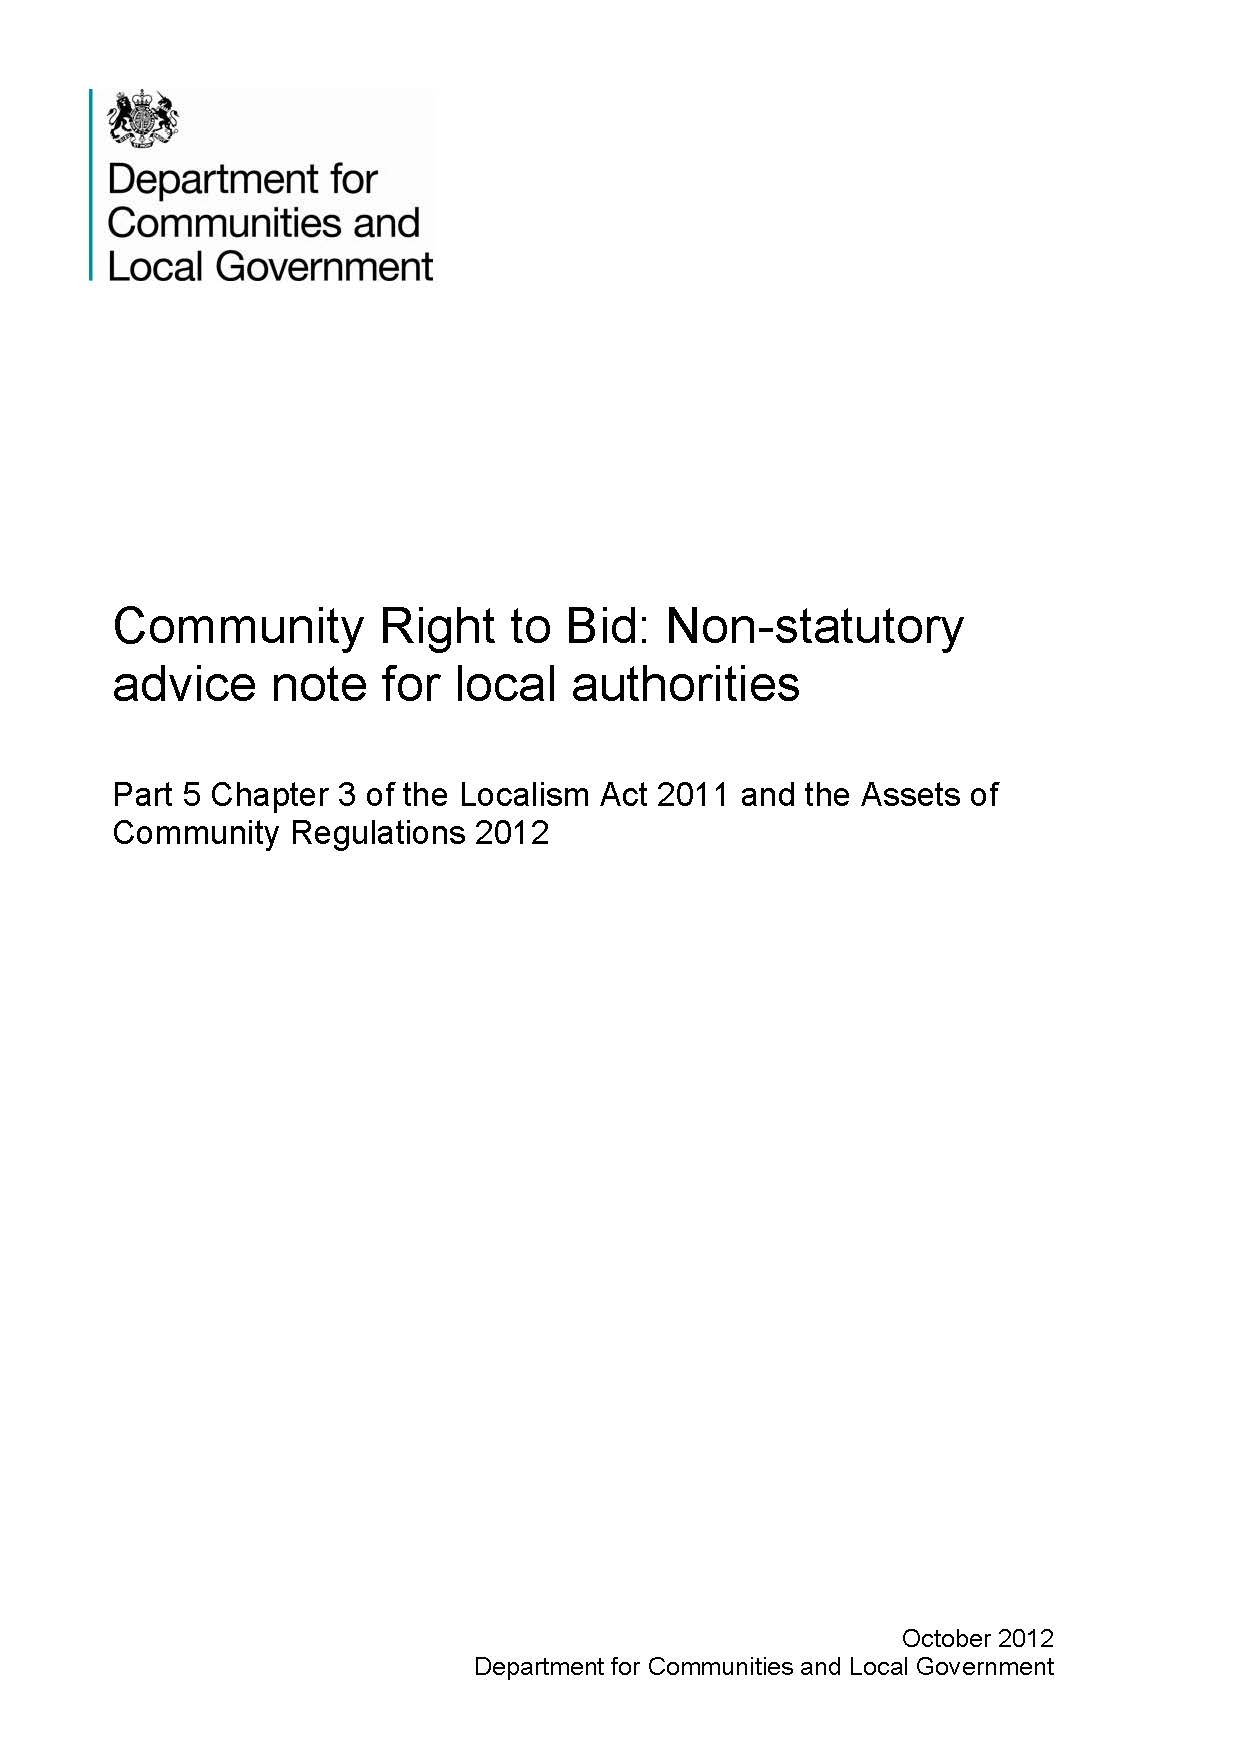 Community Right to Bid: Non-statutory  advice note for local authorities